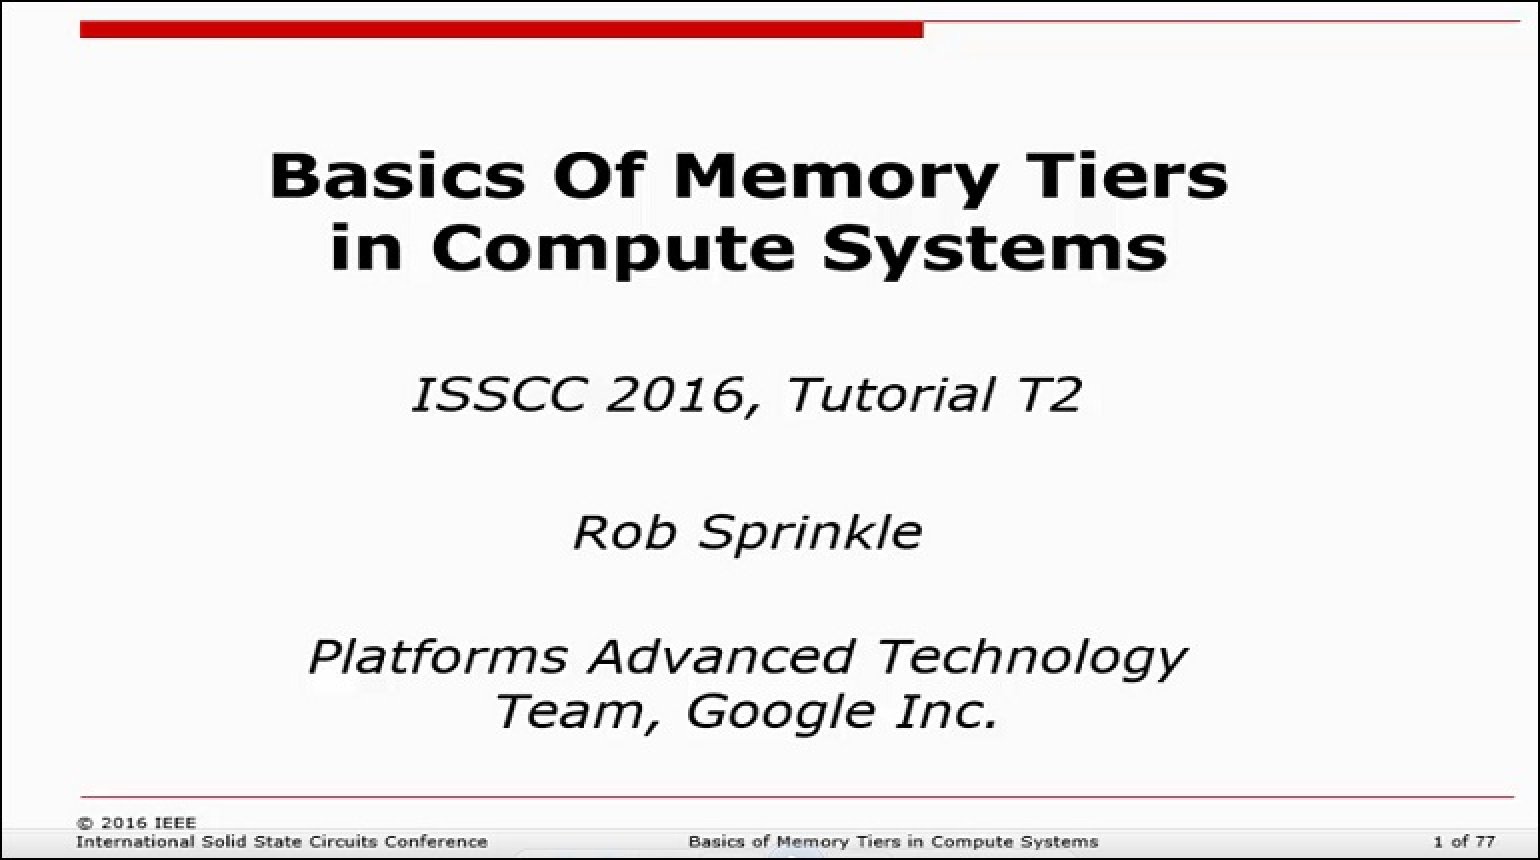 Basics of Memory Tiers in Compute Systems Video